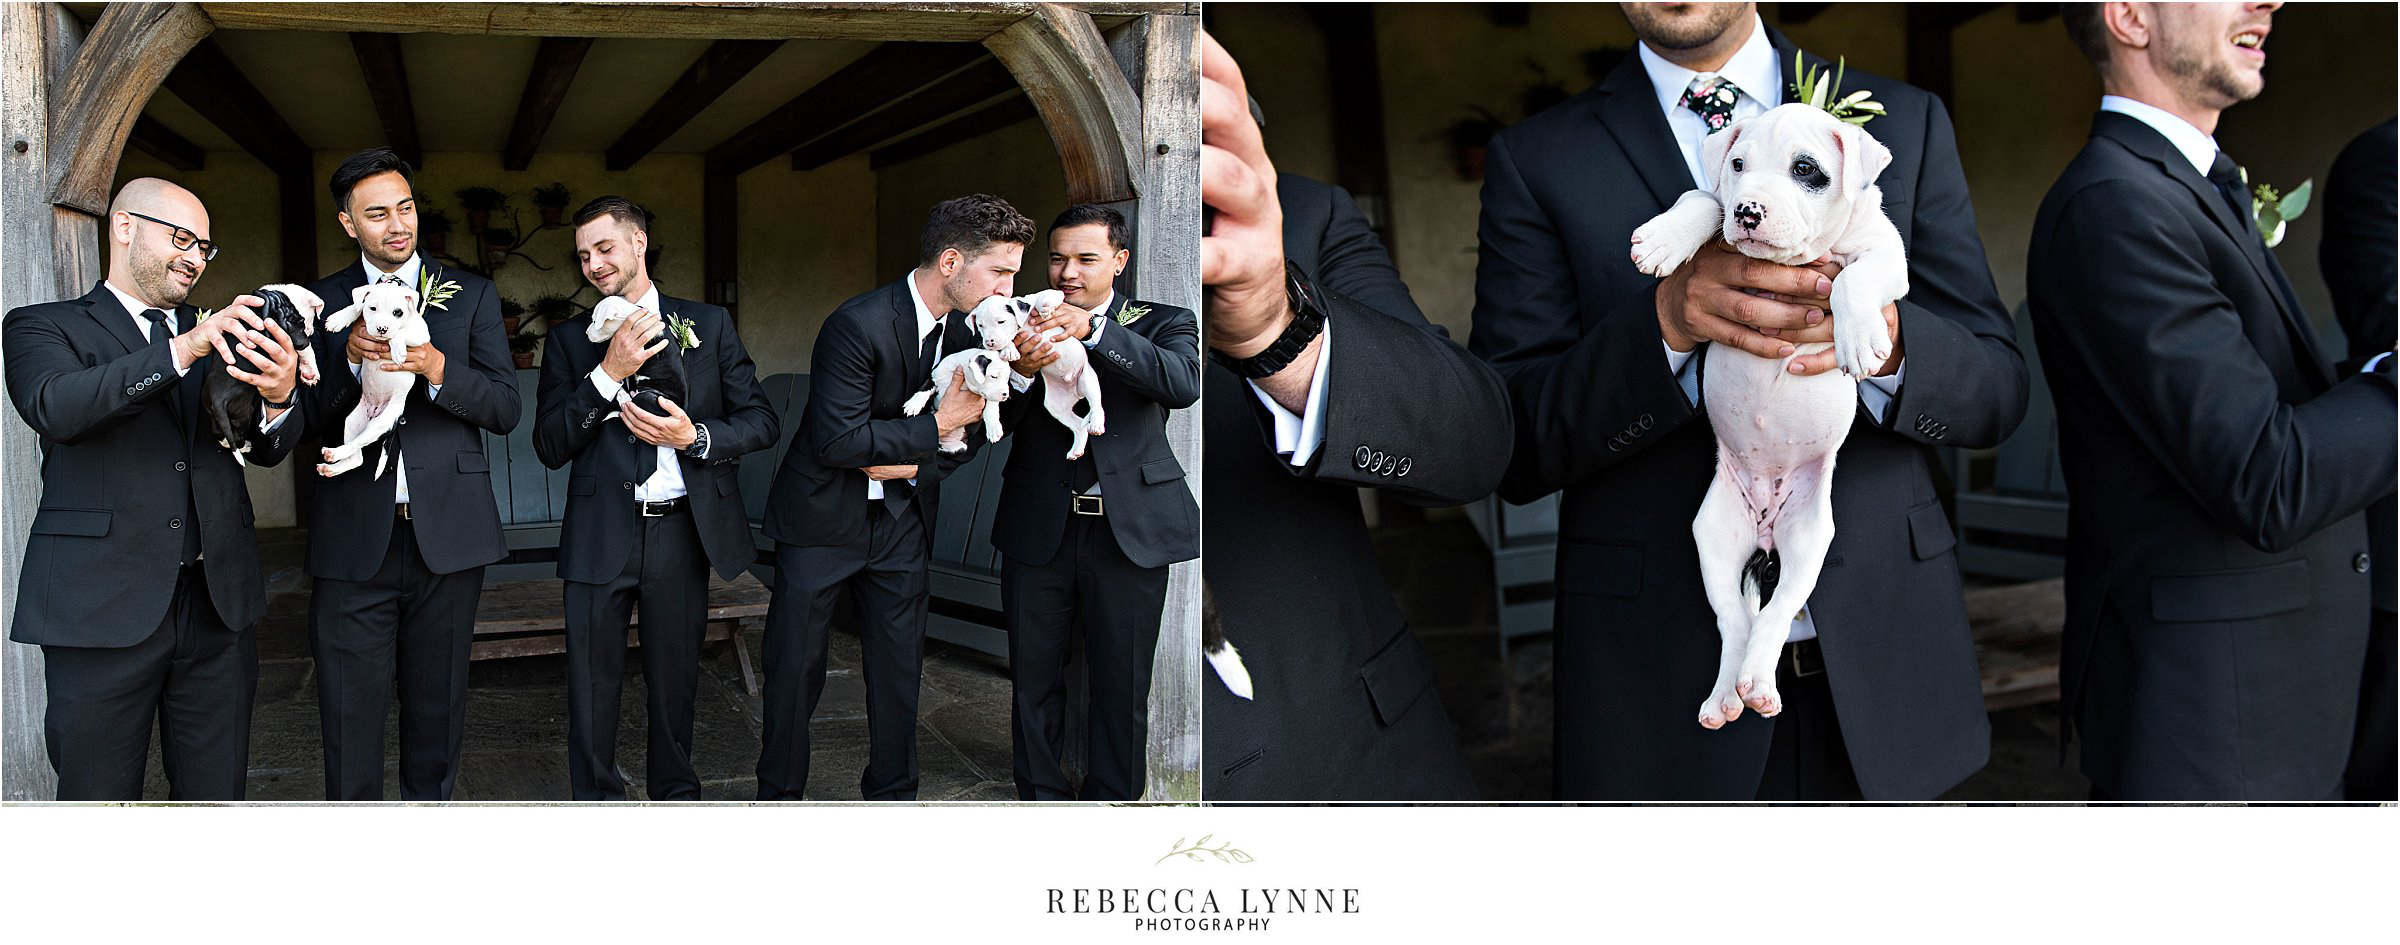 groom and groomsmen wedding photography with puppies